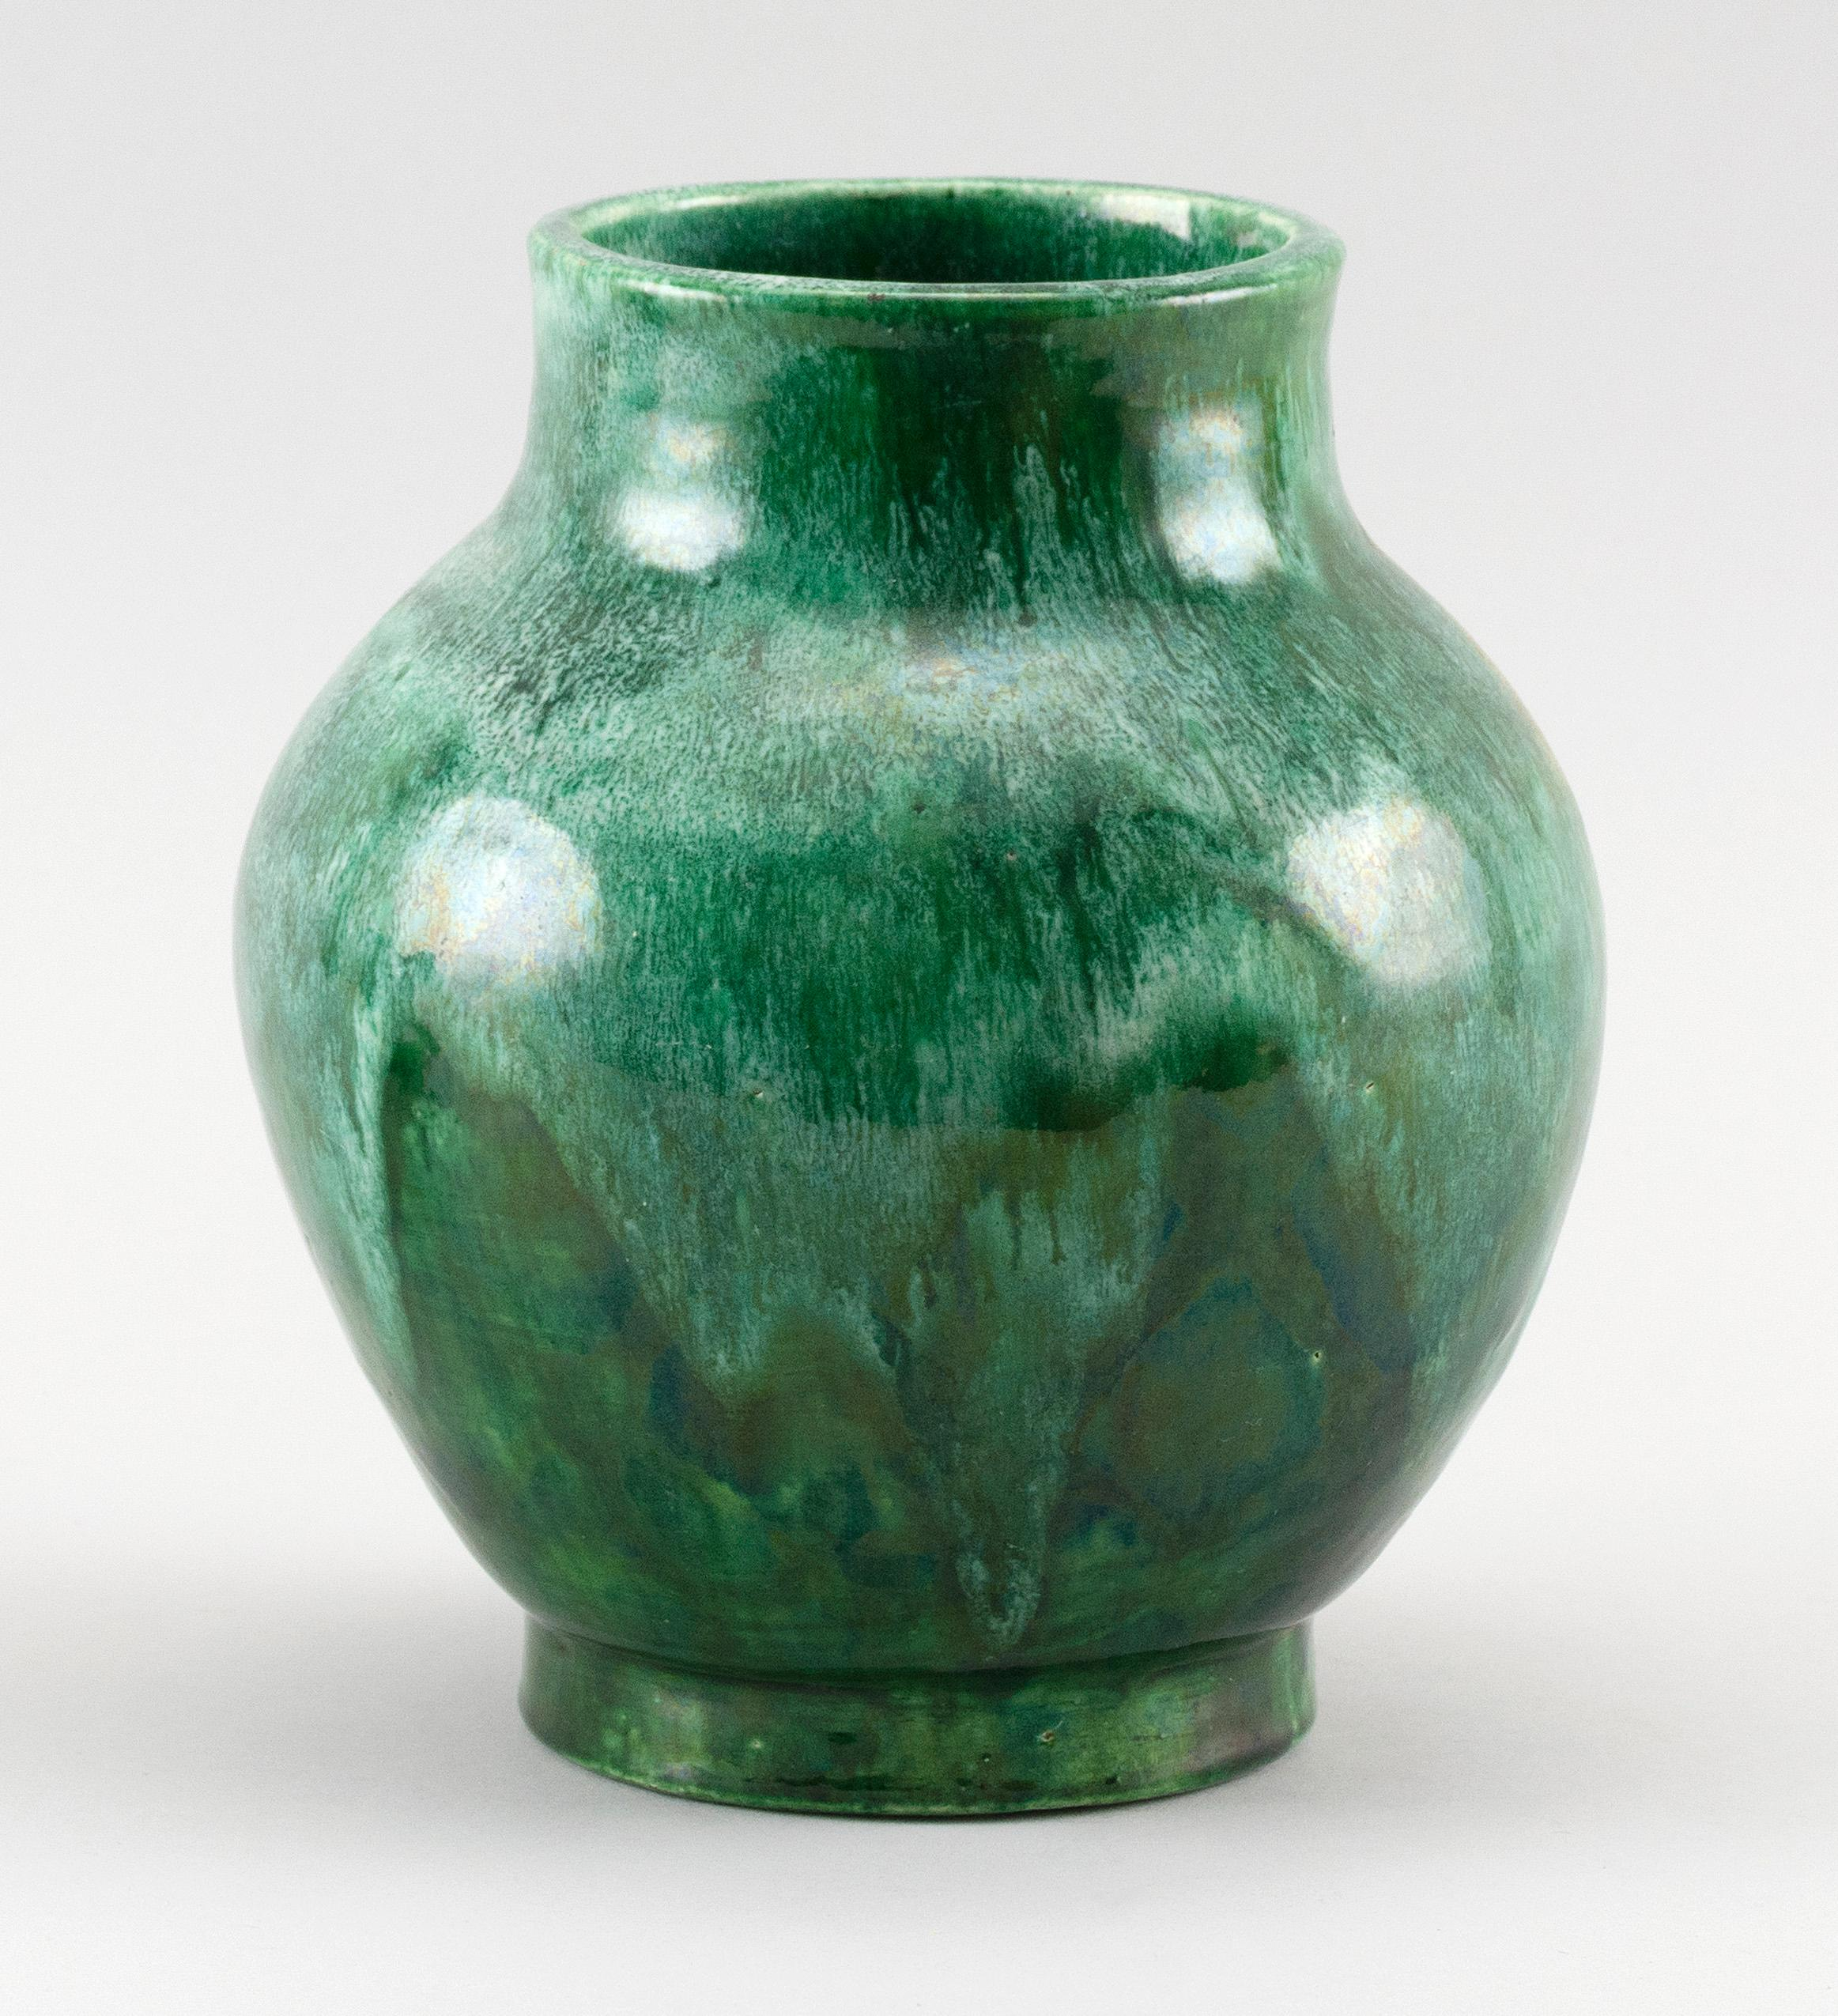 """ART POTTERY VASE Balustroid, with a heavy, variegated green glaze. Unidentified impressed mark. Height 7.25""""."""